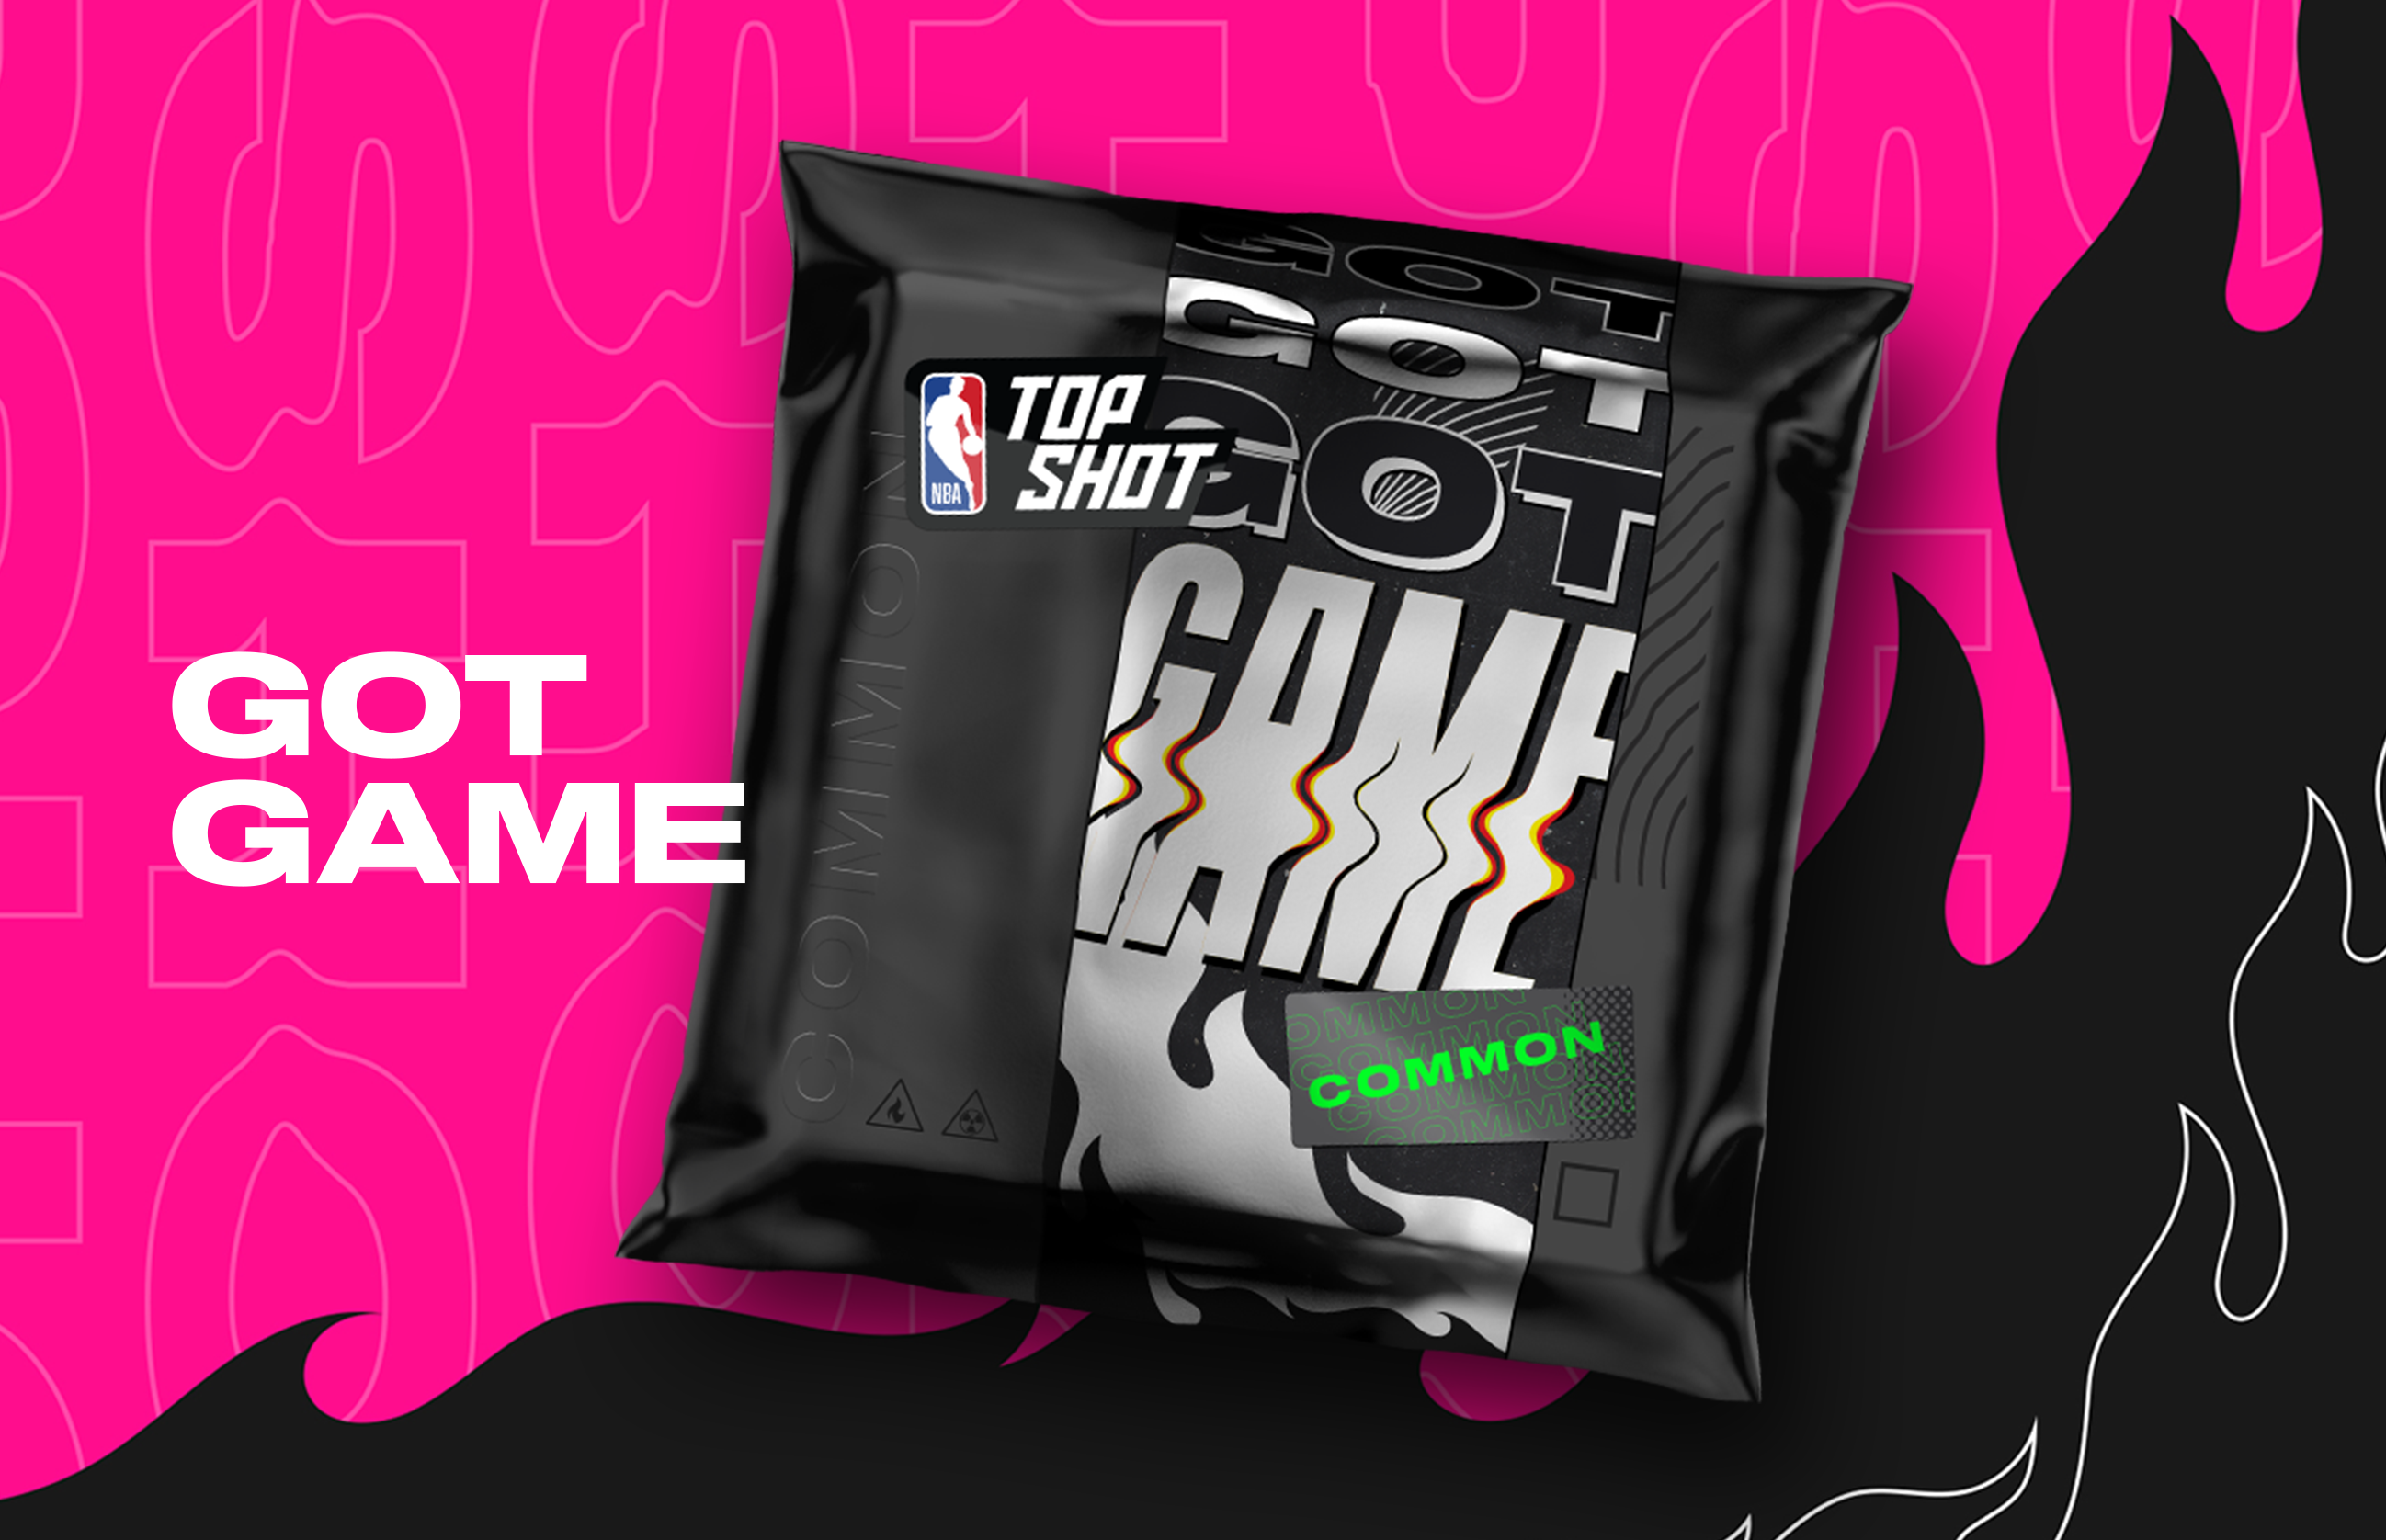 With a former MVP, a defensive stalwart, and some up-and-coming youngsters, these packs have a little something for every fan to enjoy.